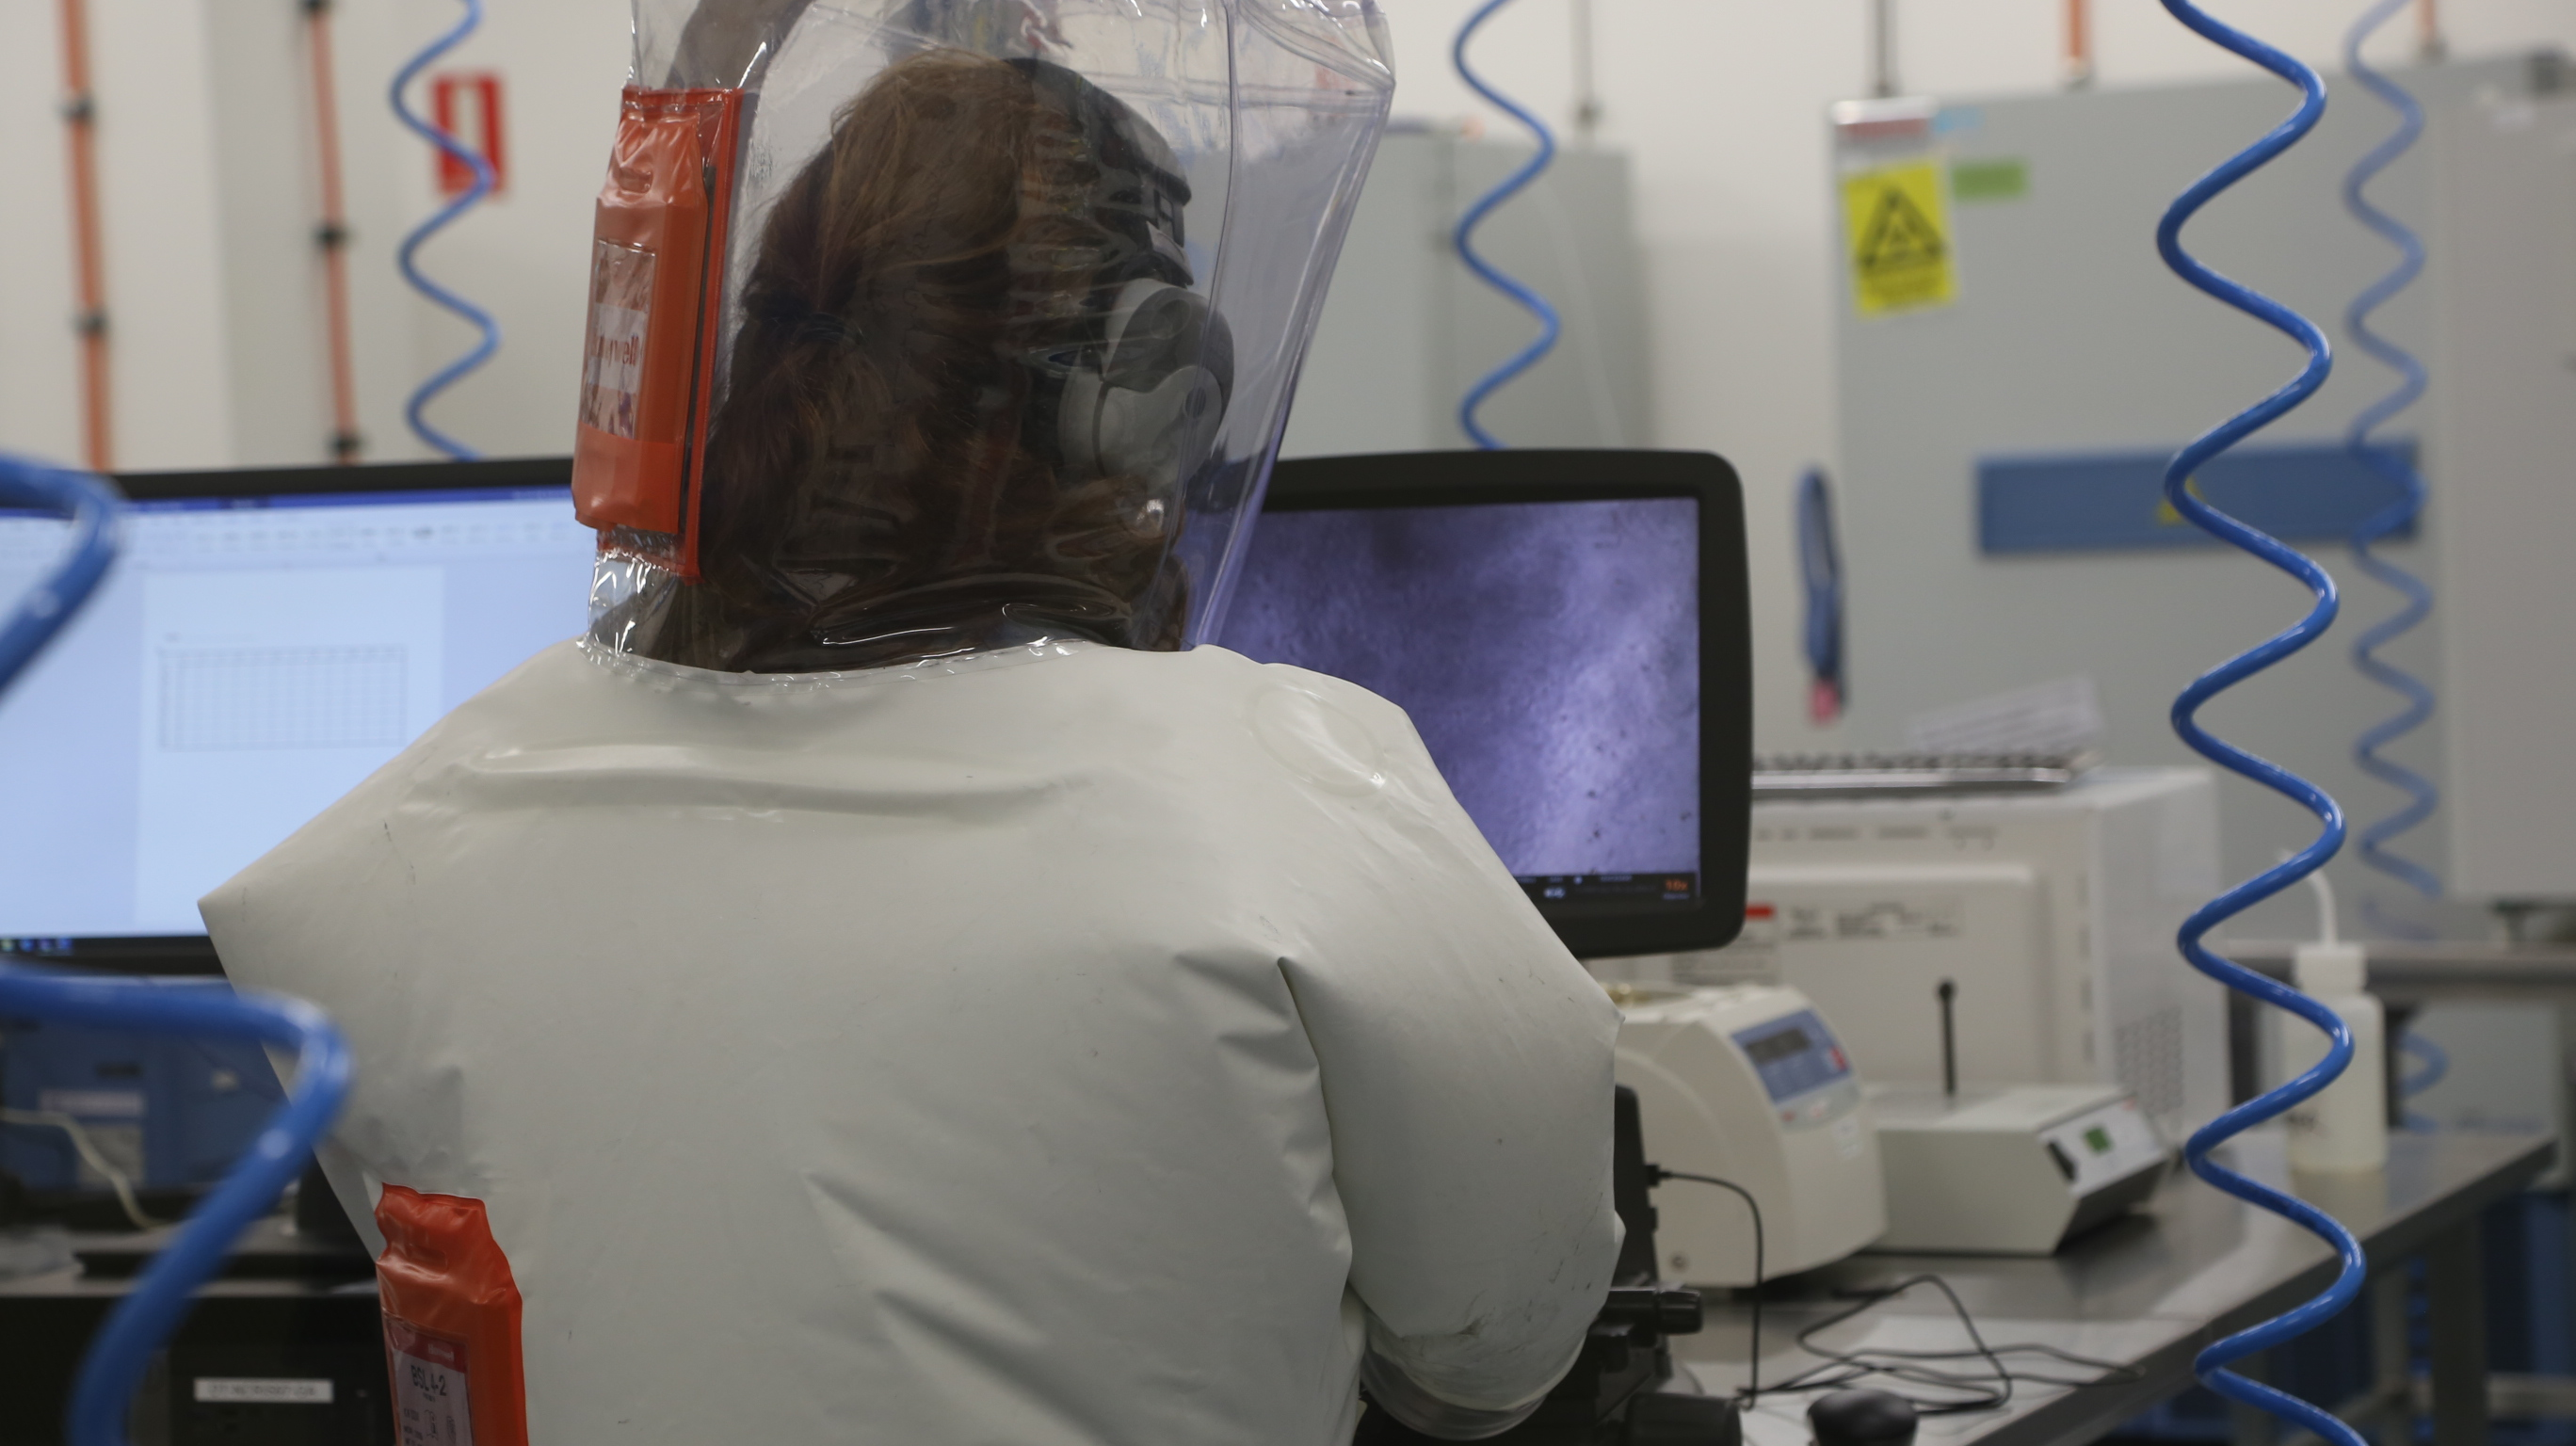 Scientist working in a laboratory at a computer screen wearing a protective suit.